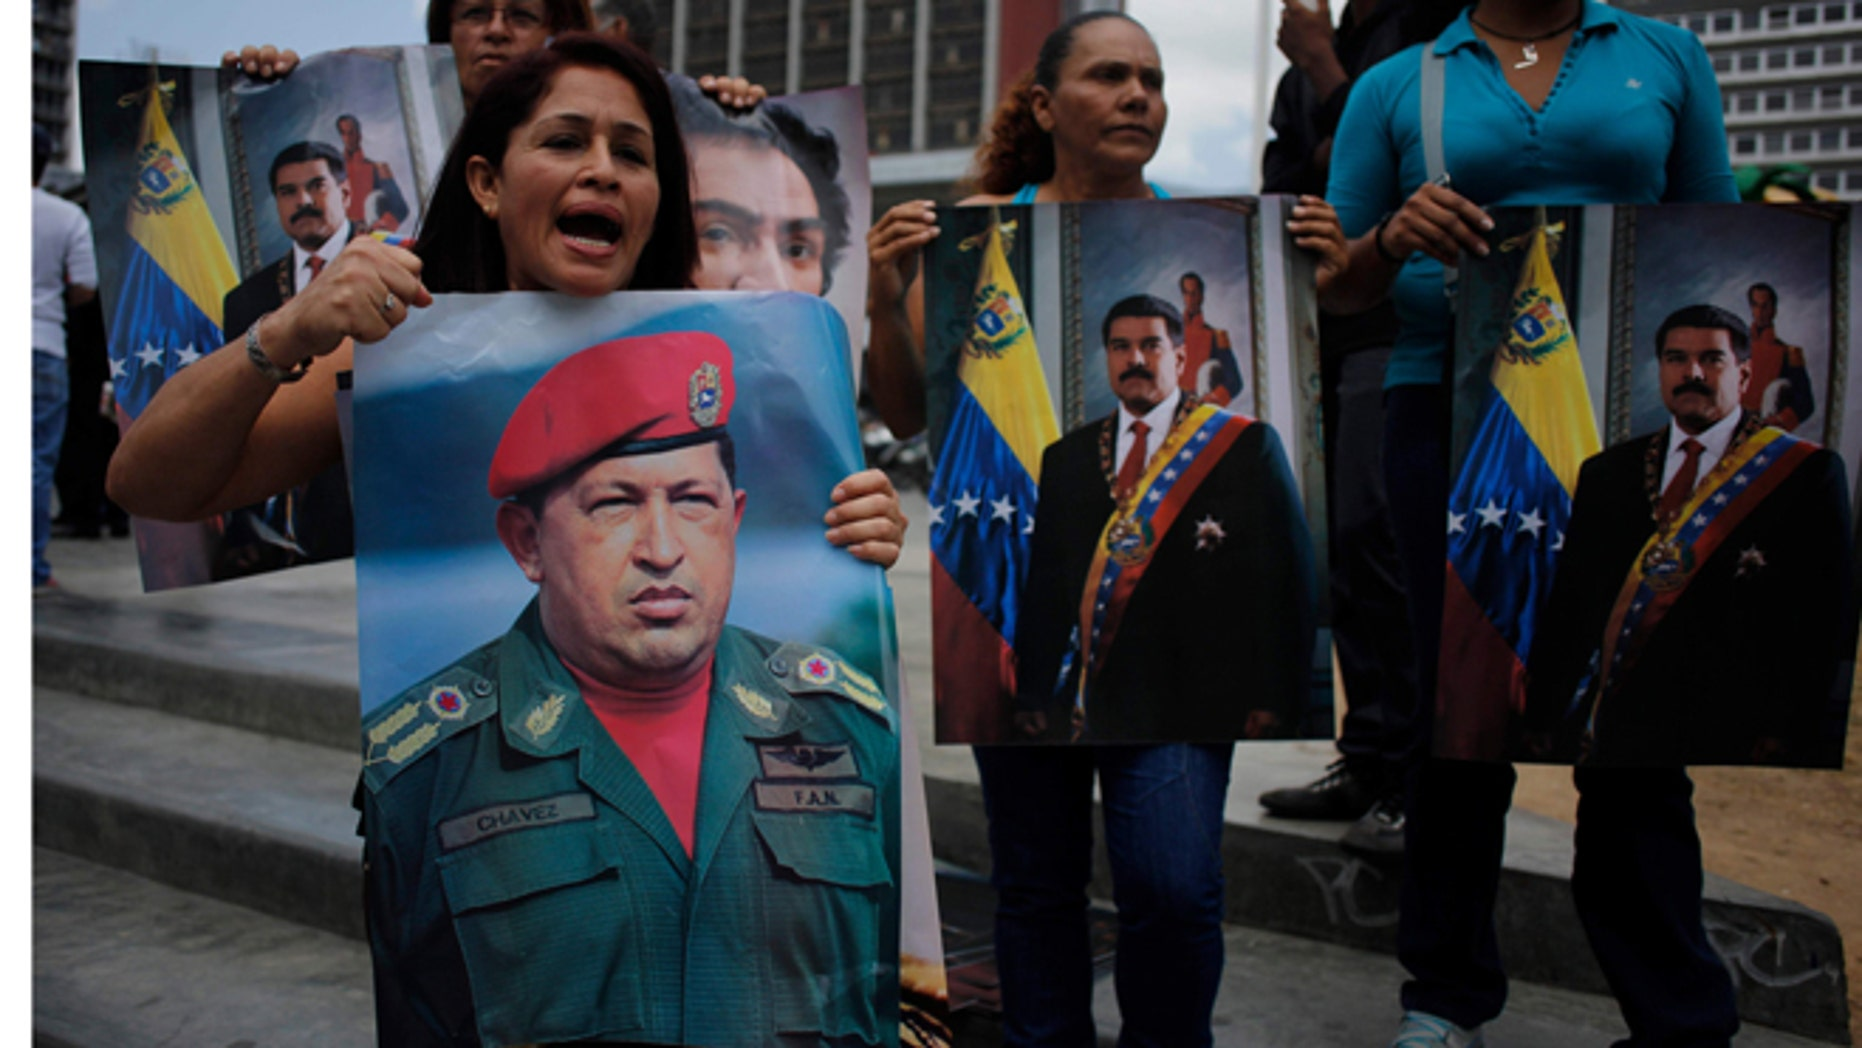 Supporters of Venezuela's President Nicolas Maduro, hold posters of him and of late Venezuelan President Hugo Chavez during a demonstration outside the Palace of justice in Caracas, Venezuela, Wednesday, Feb. 19, 2014. Following a dramatic surrender and a night in jail, Venezuelan opposition leader Leopoldo Lopez was due in court Wednesday to learn what charges he may face for allegedly provoking violence during protests against the socialist government in the divided nation. (AP Photo/Rodrigo Abd)